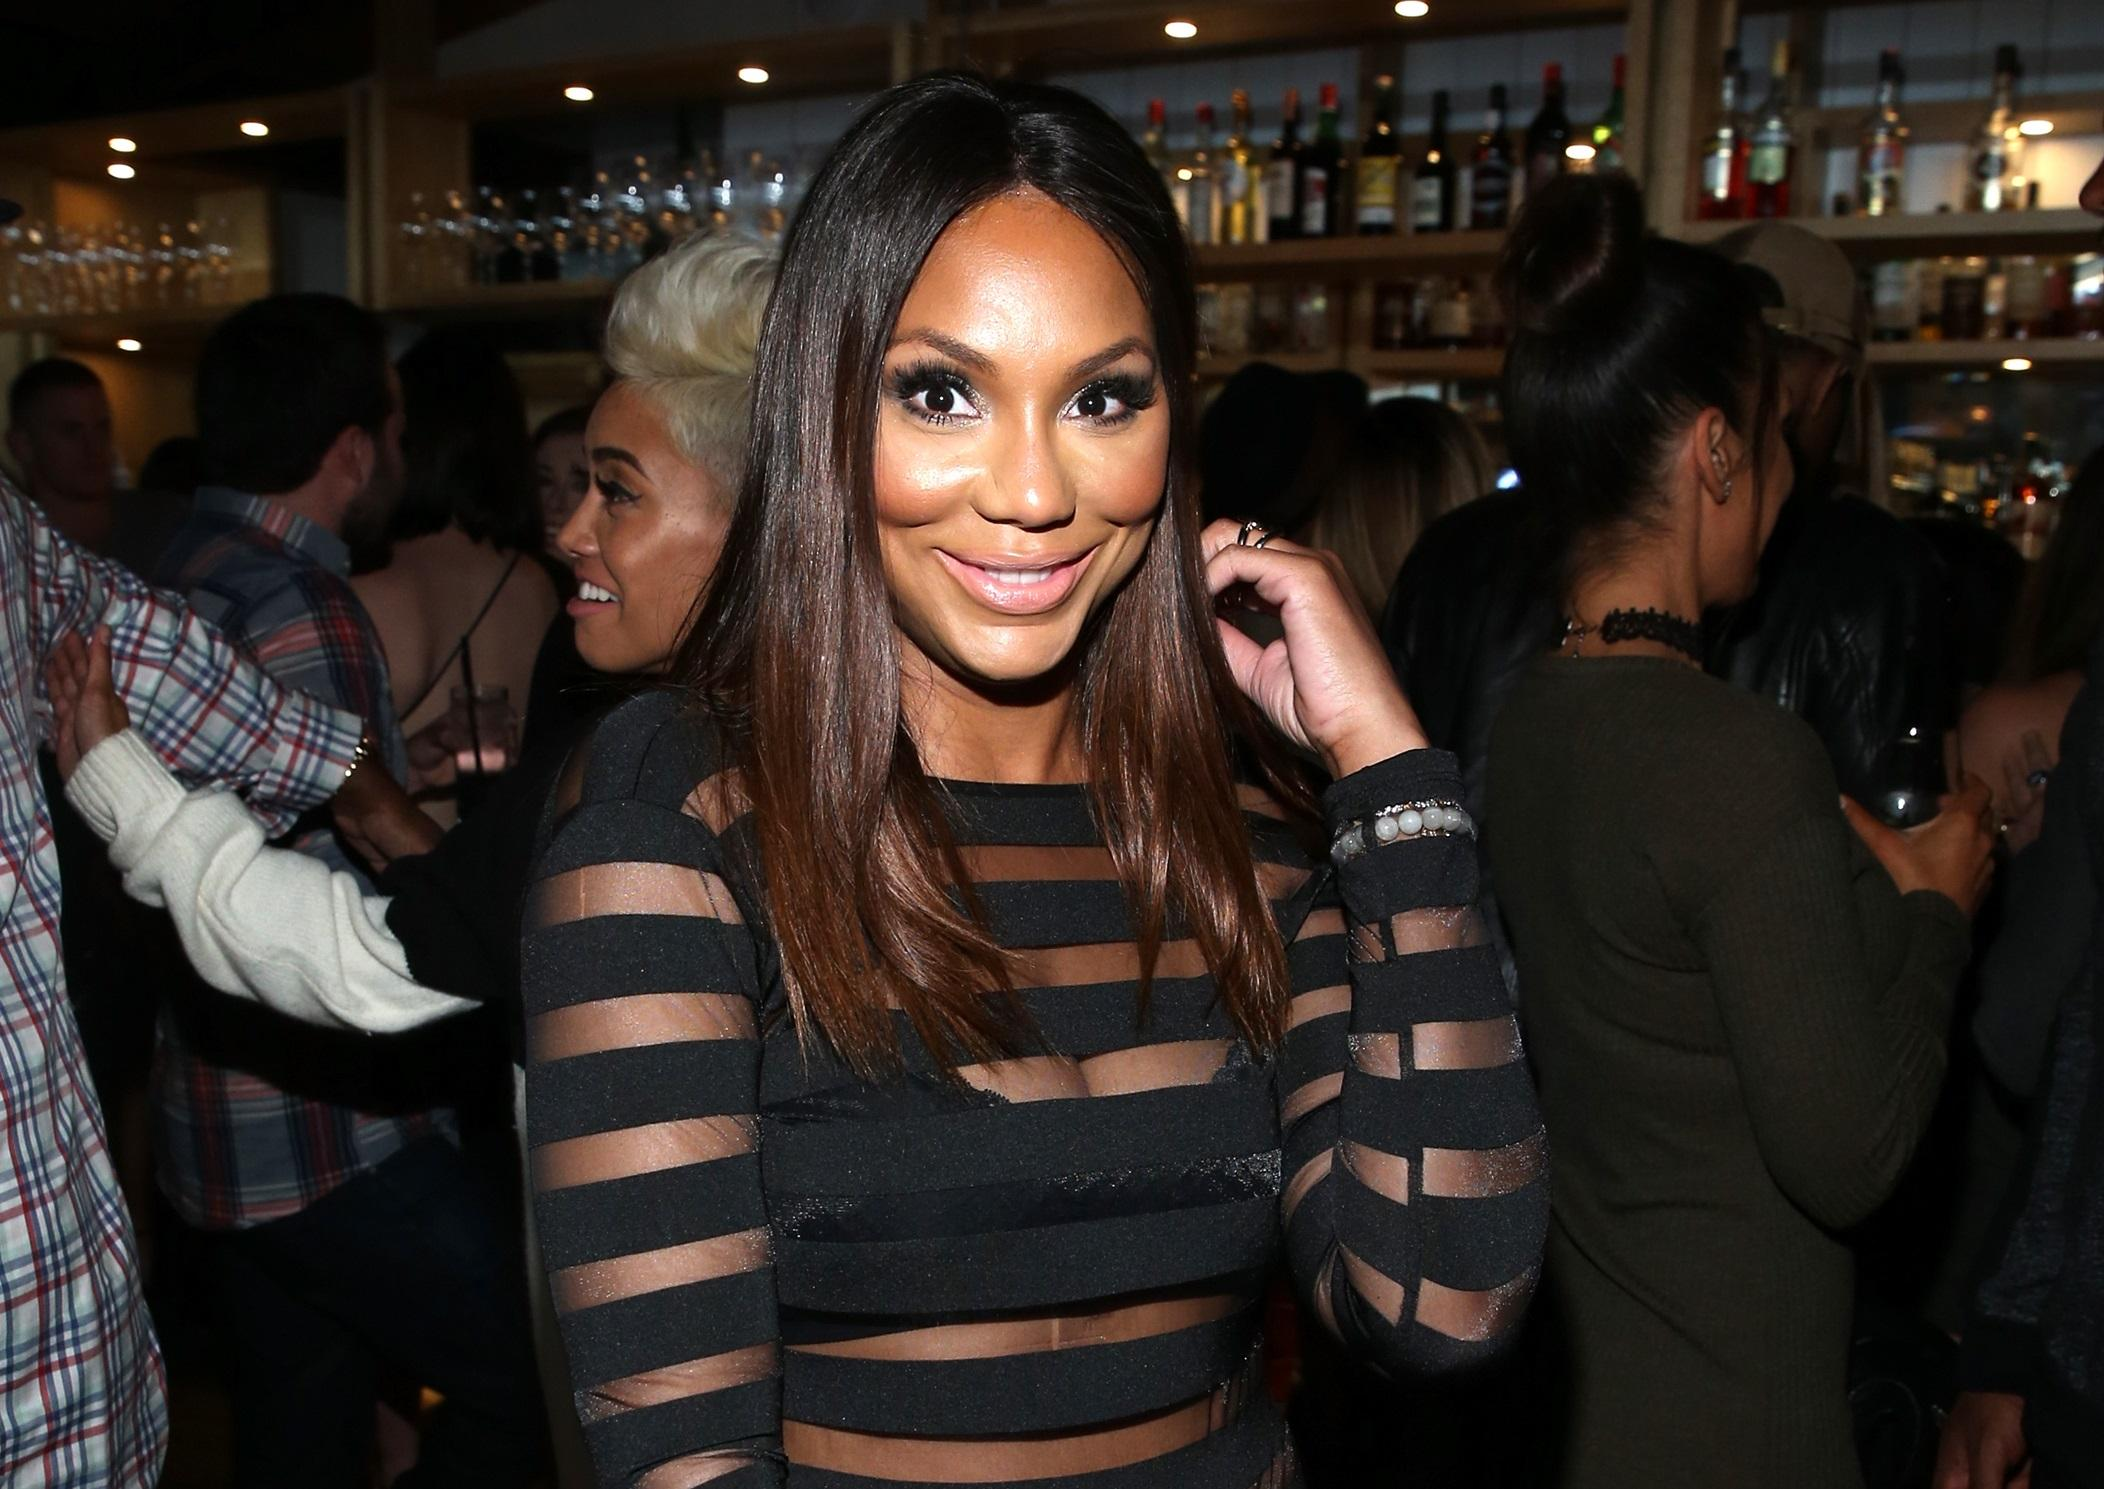 Tamar Braxton The Real drama update